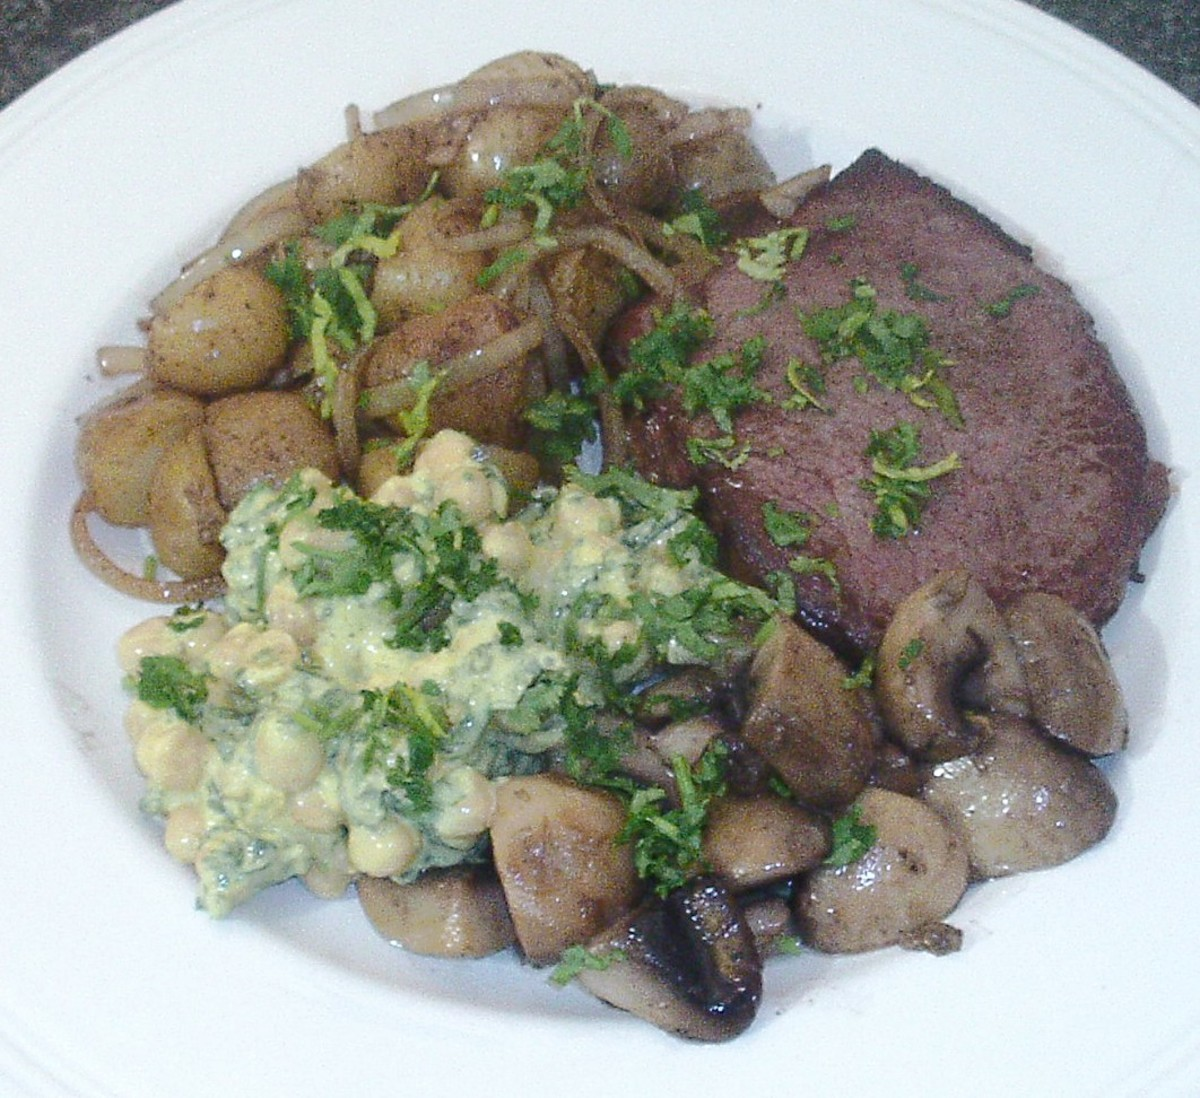 This beef steak with fried potatoes and onions, garlic mushrooms and spicy chickpeas salad is just one of the recipes to be found on this page